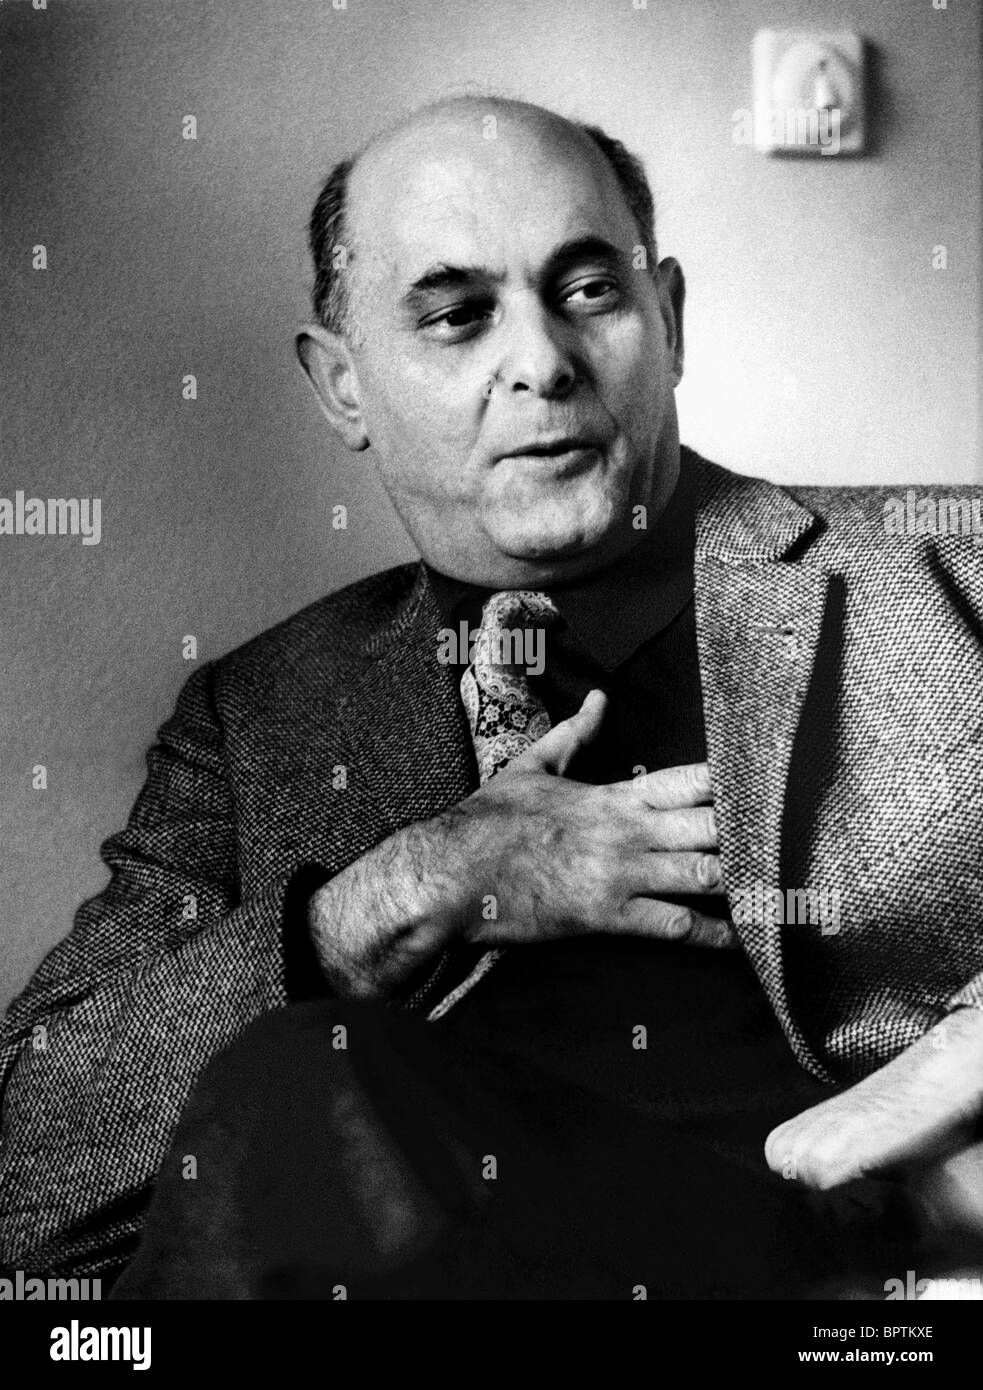 GEORG SOLTI CONDUCTOR (1970) - Stock Image